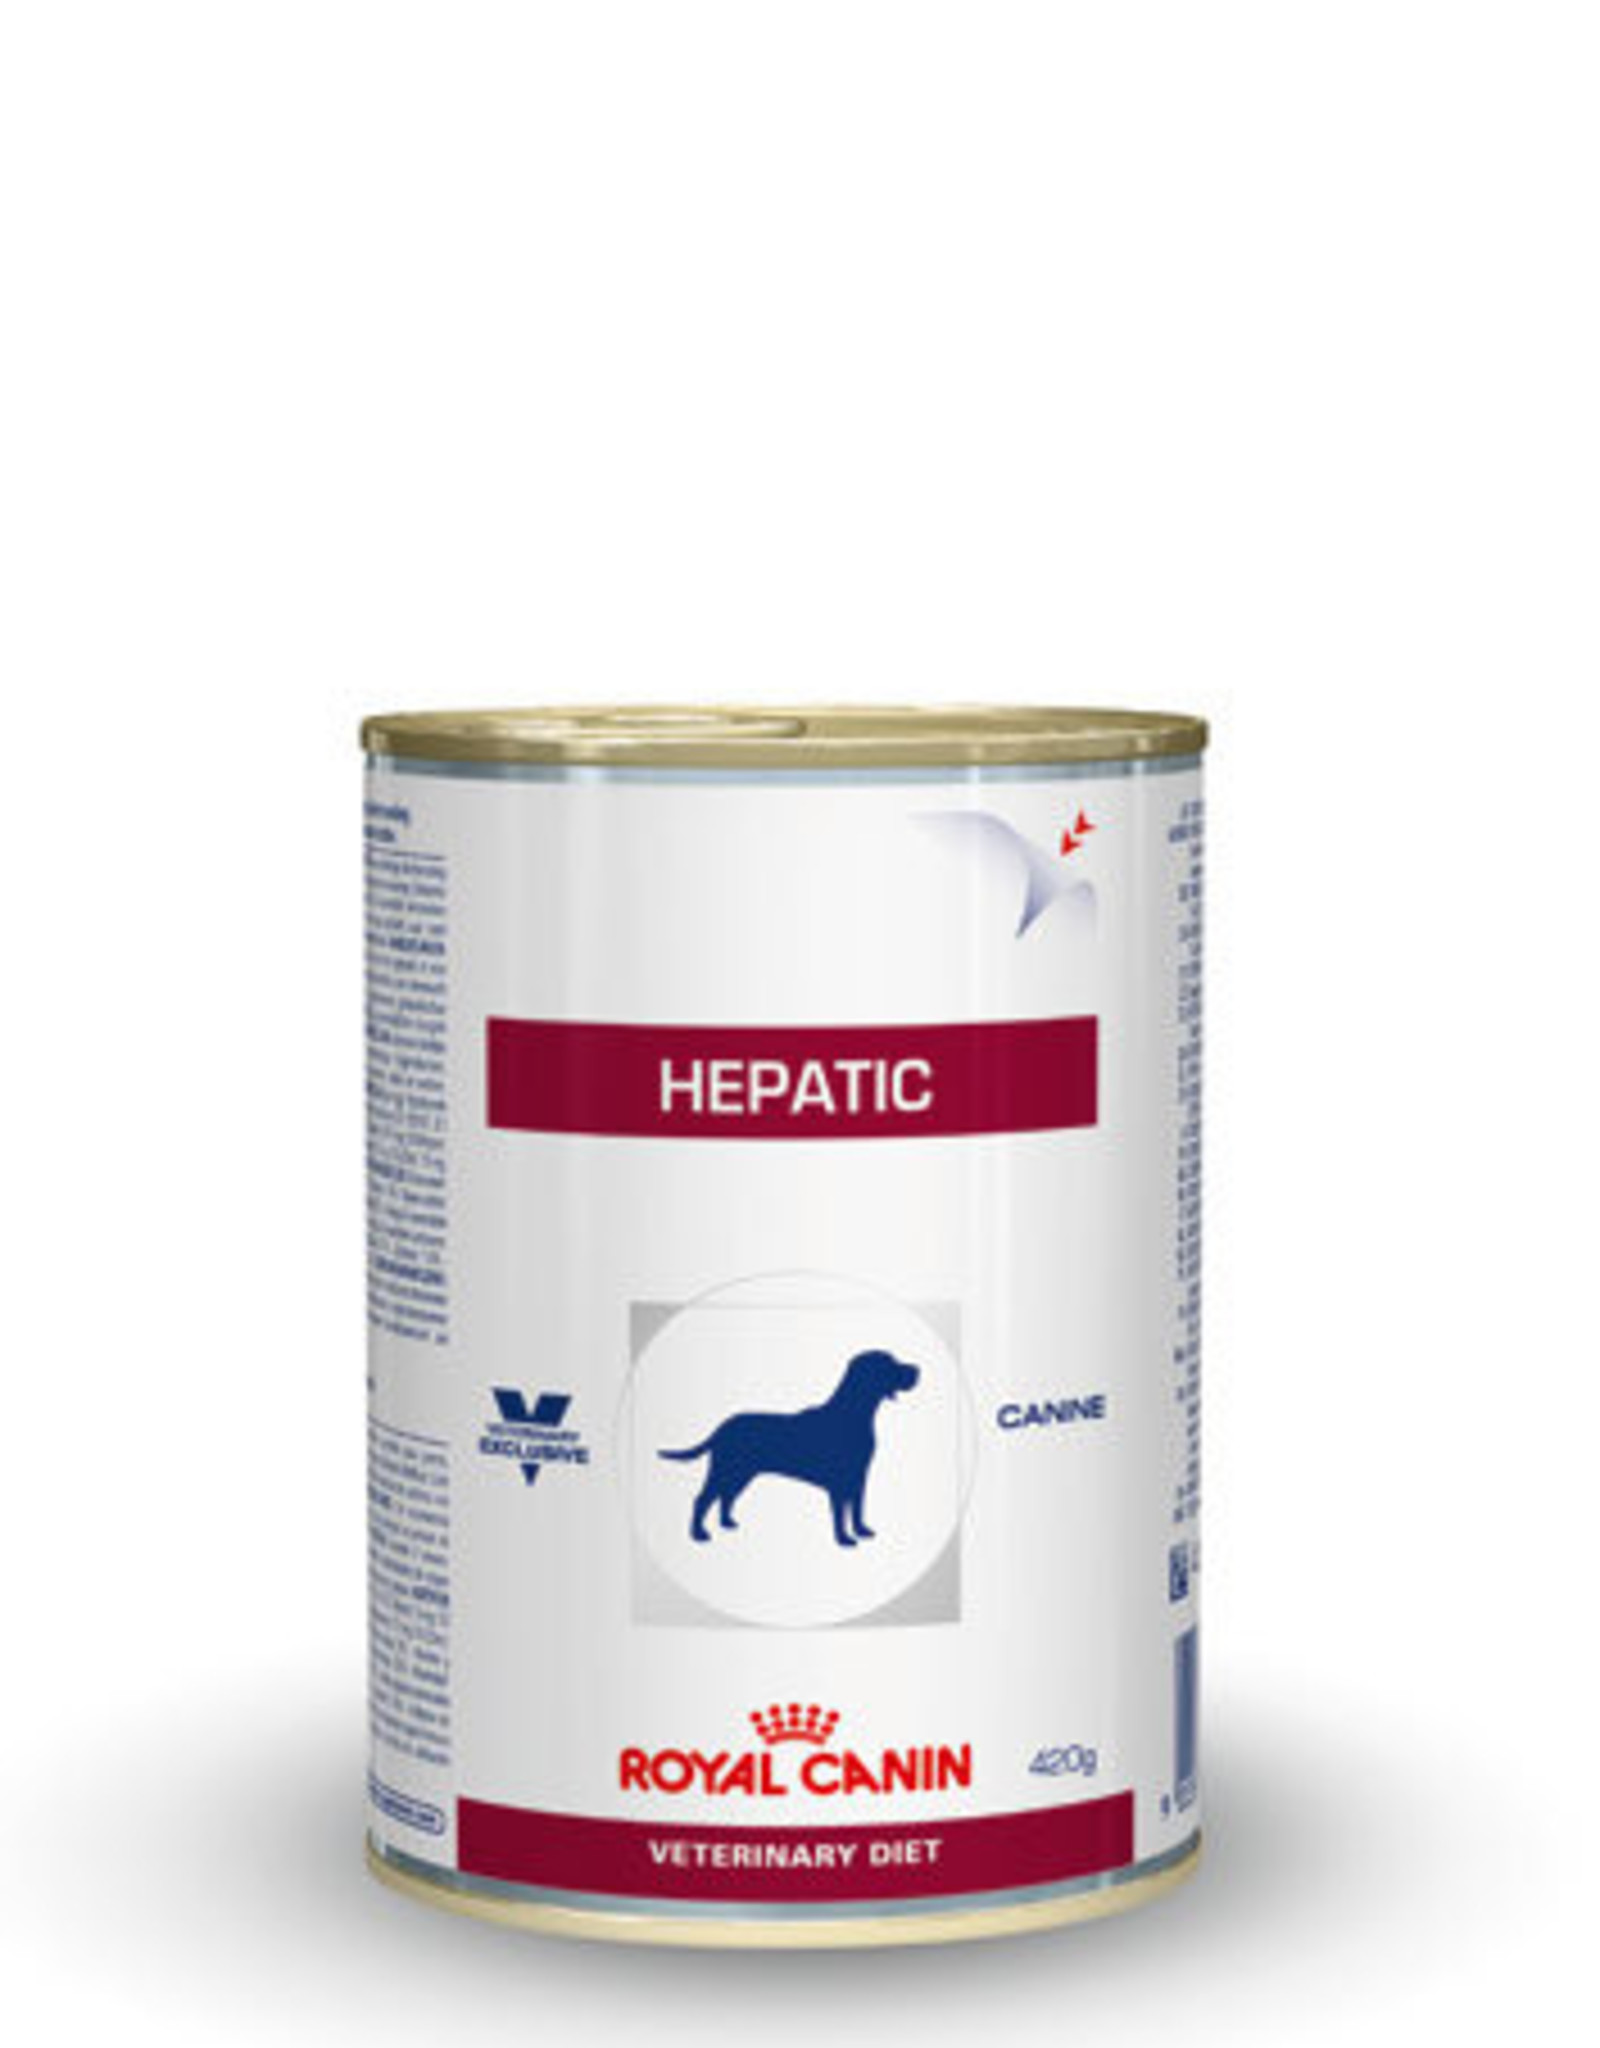 Royal Canin Royal Canin Vdiet Hepatic Hond 12x420gr